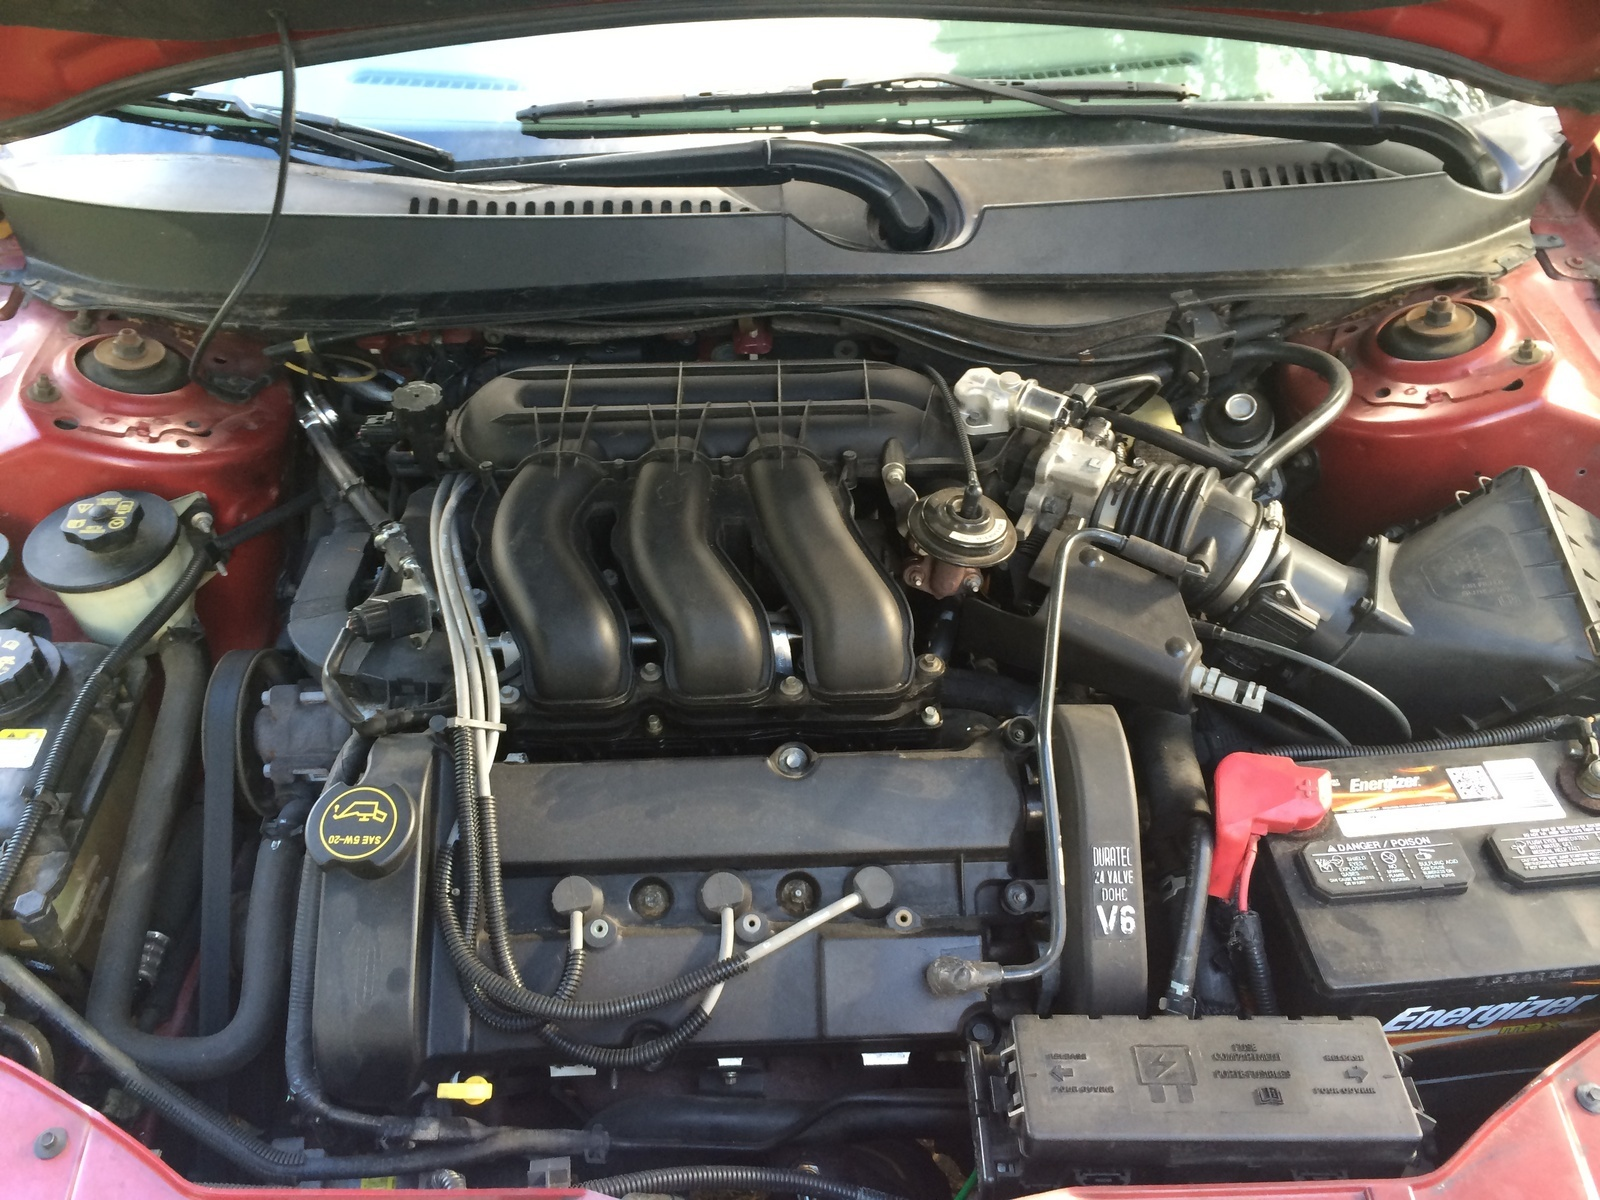 2004 ford taurus spark plug wiring diagram 2004 ford taurus questions if anyone can give me insight direction i on 2004 ford taurus spark